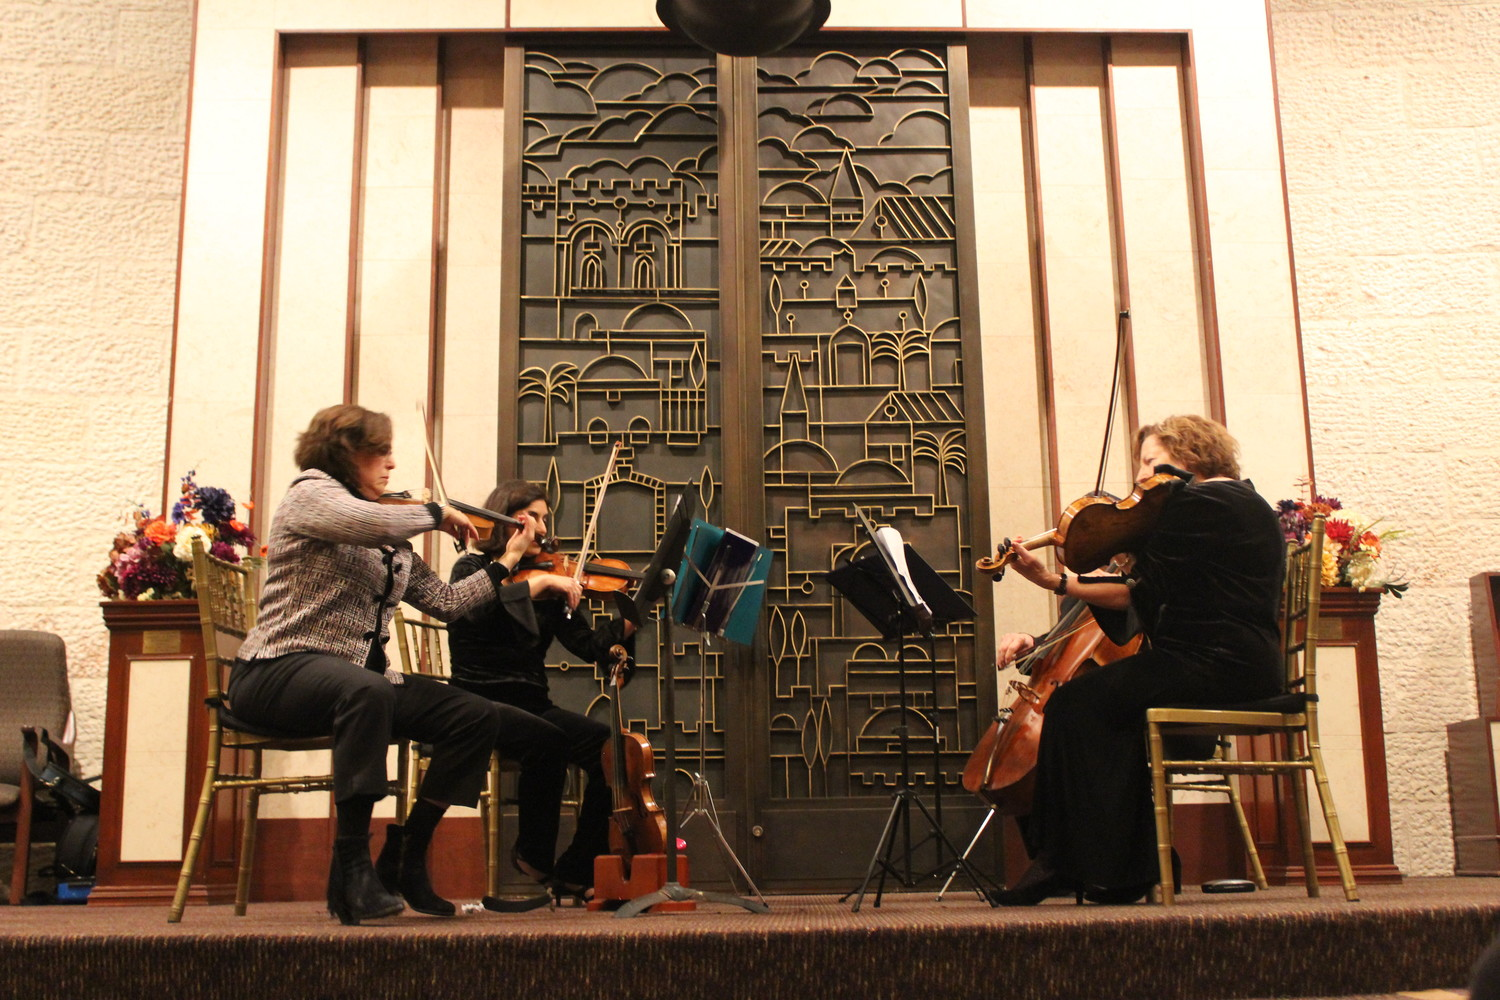 During the temple's Yom Hashoah service on April 11, congregants listened to a quartet play instruments that had been salvaged from the Holocaust.